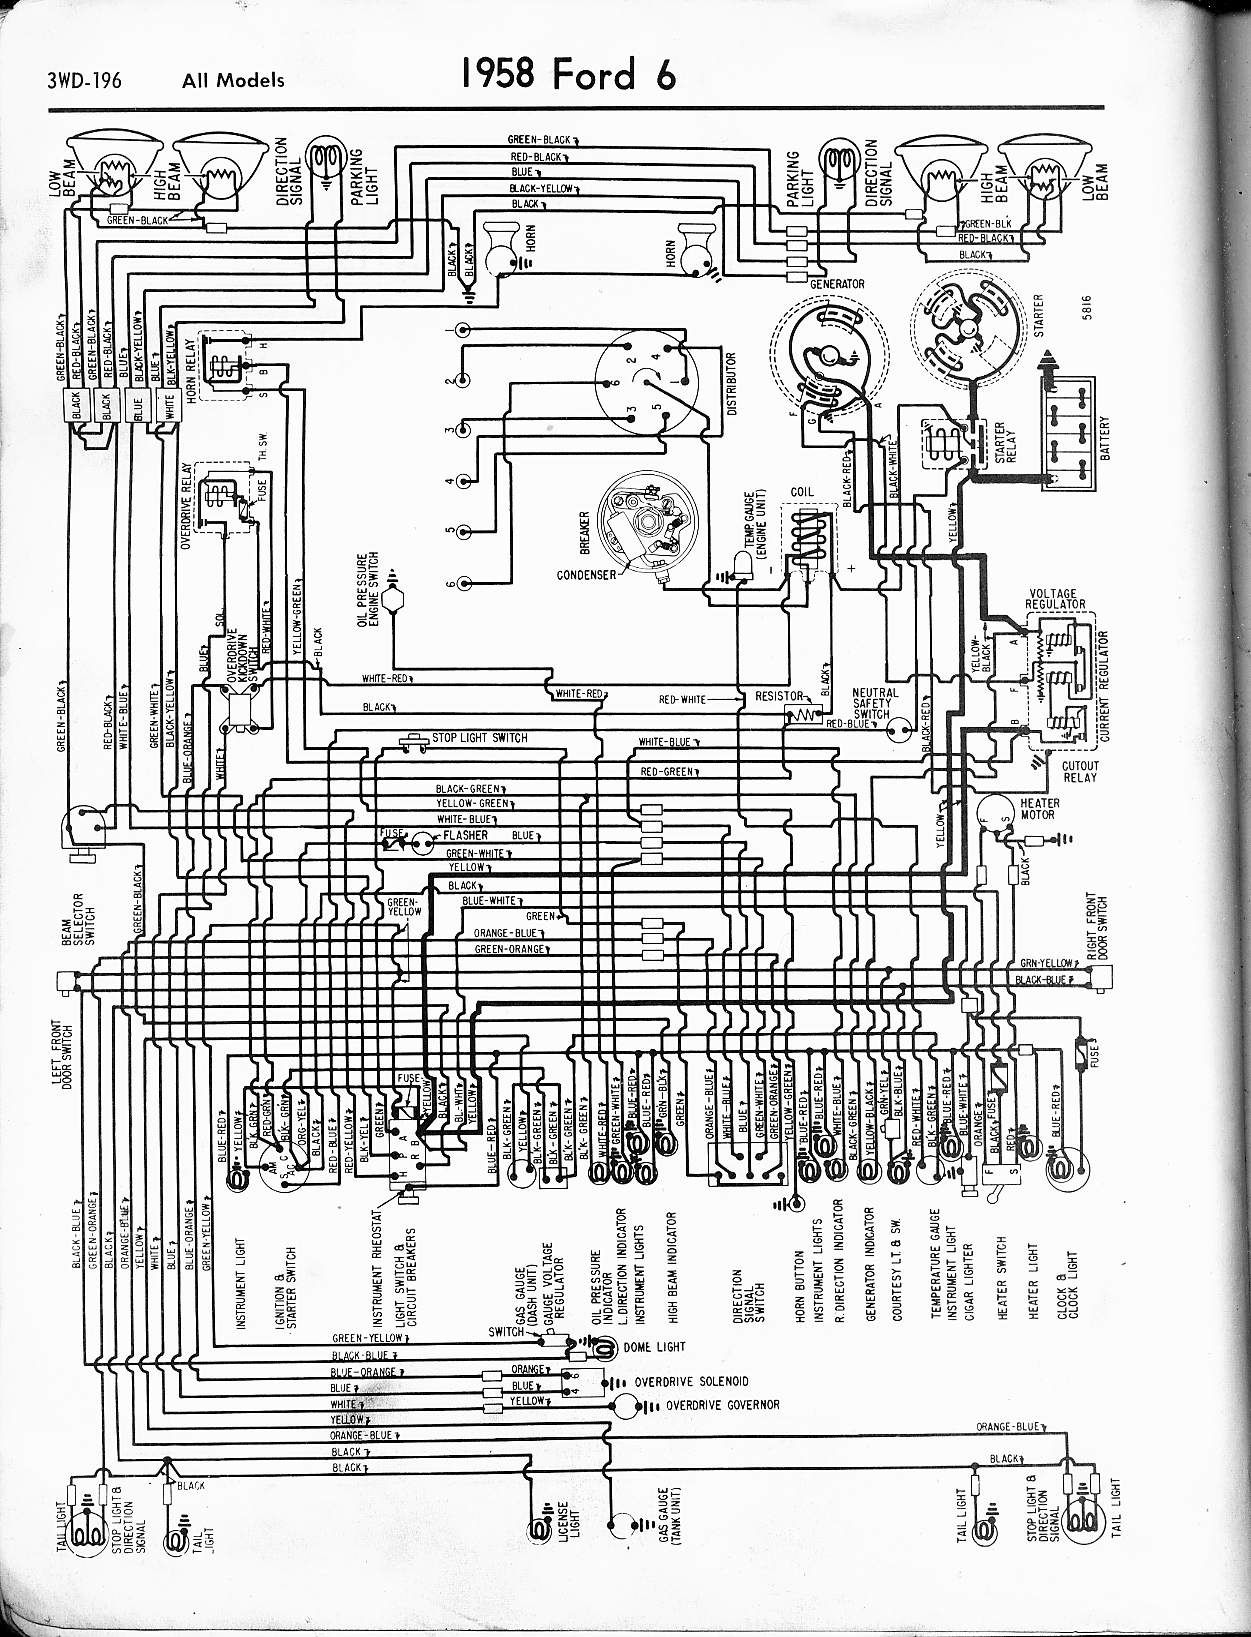 1958 Ford 6 Wiring Schematic Diagram Diagram Design Trailer Wiring Diagram